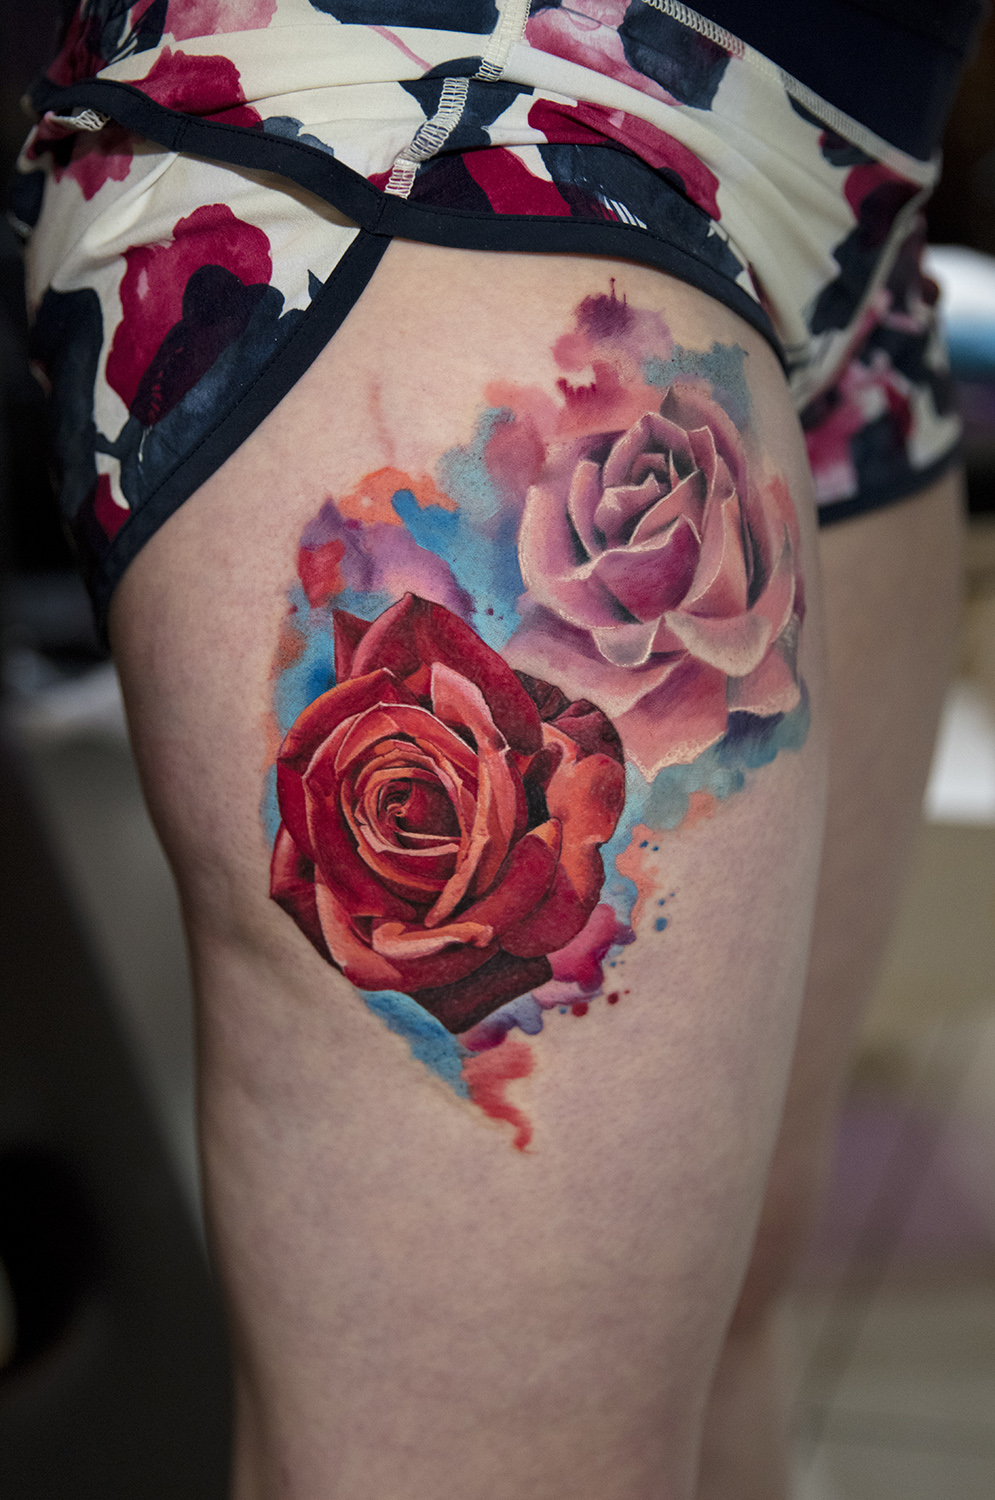 adeline rose tattoo by Mikhail Andersson